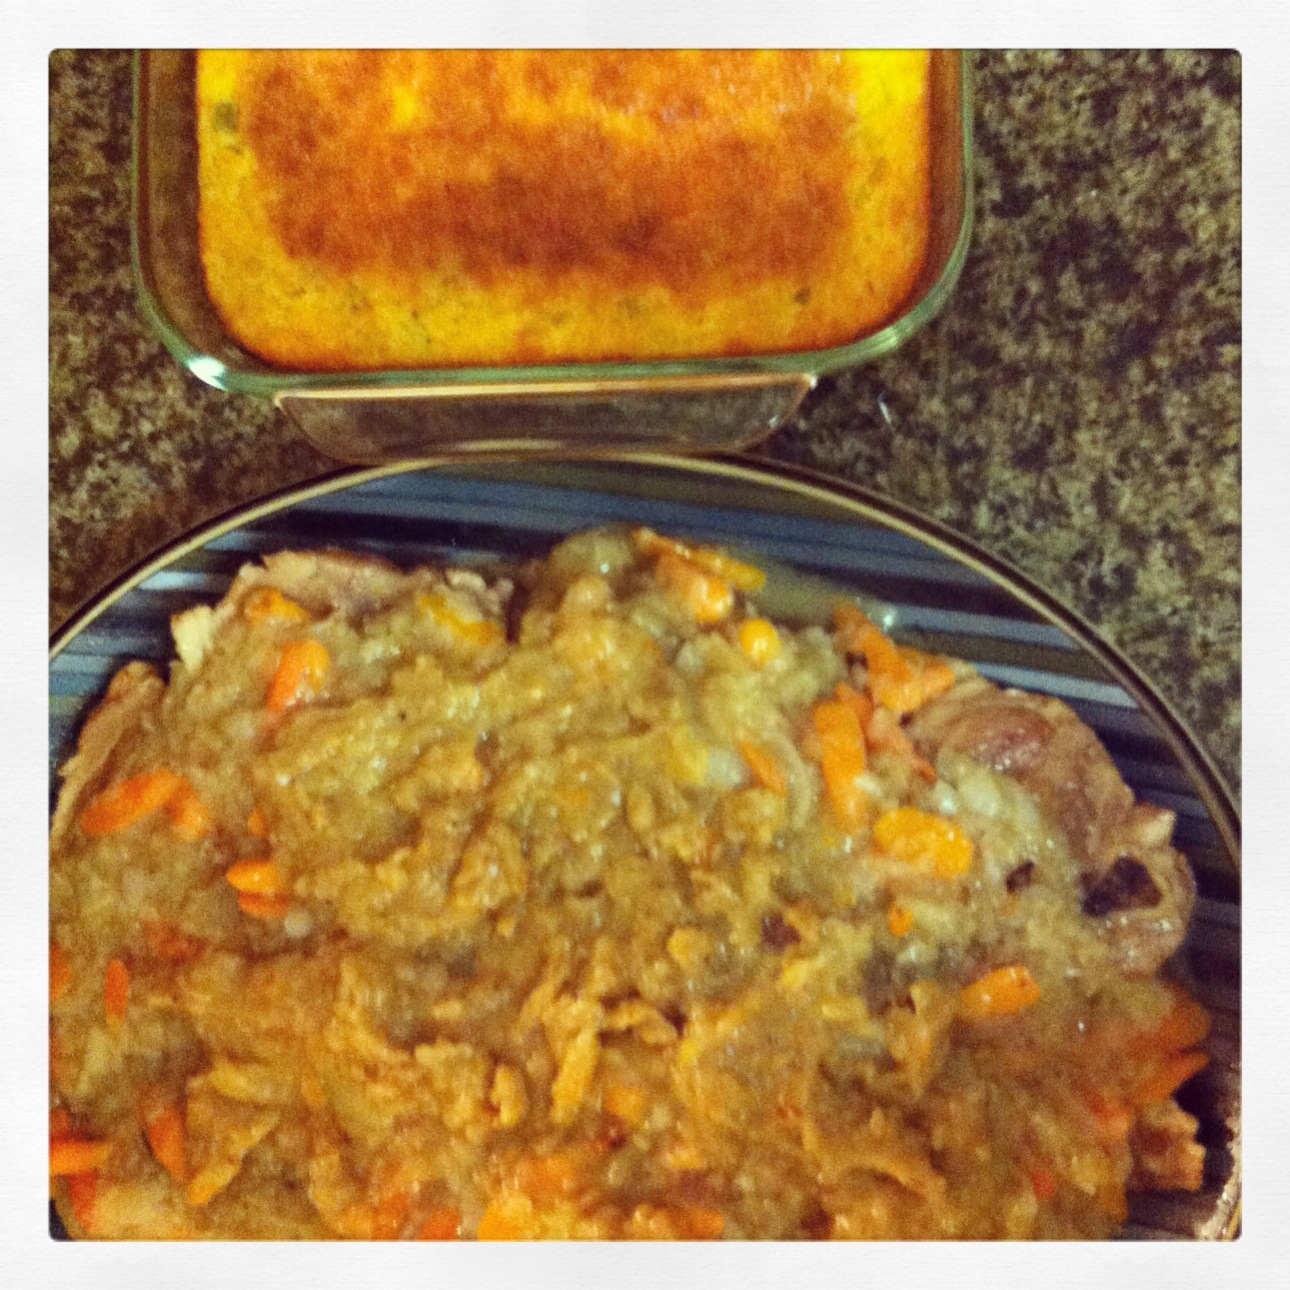 A glimpse of the Mexican Spoon Bread in this photo with the Savory Pork Steak.